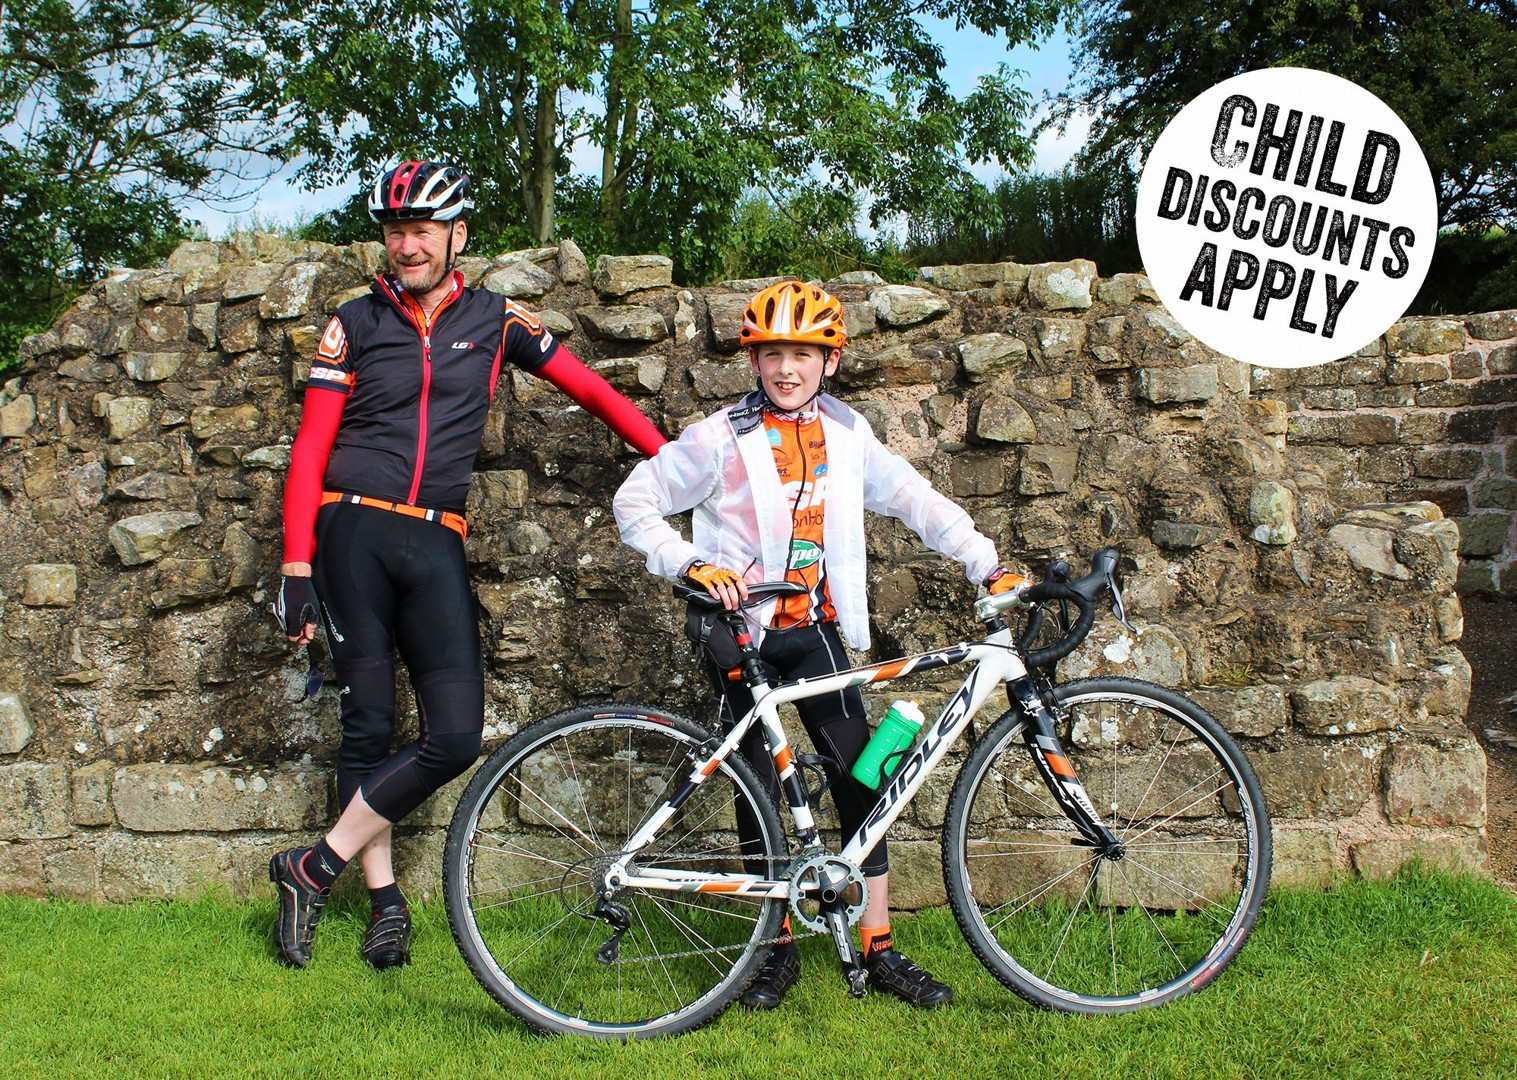 UK - Hadrian's Cycleway - 4 Days Cycling - Self-Guided Family Cycling Holiday copy.jpg - UK - Hadrian's Cycleway - 4 Days Cycling - Self-Guided Family Cycling Holiday - Family Cycling